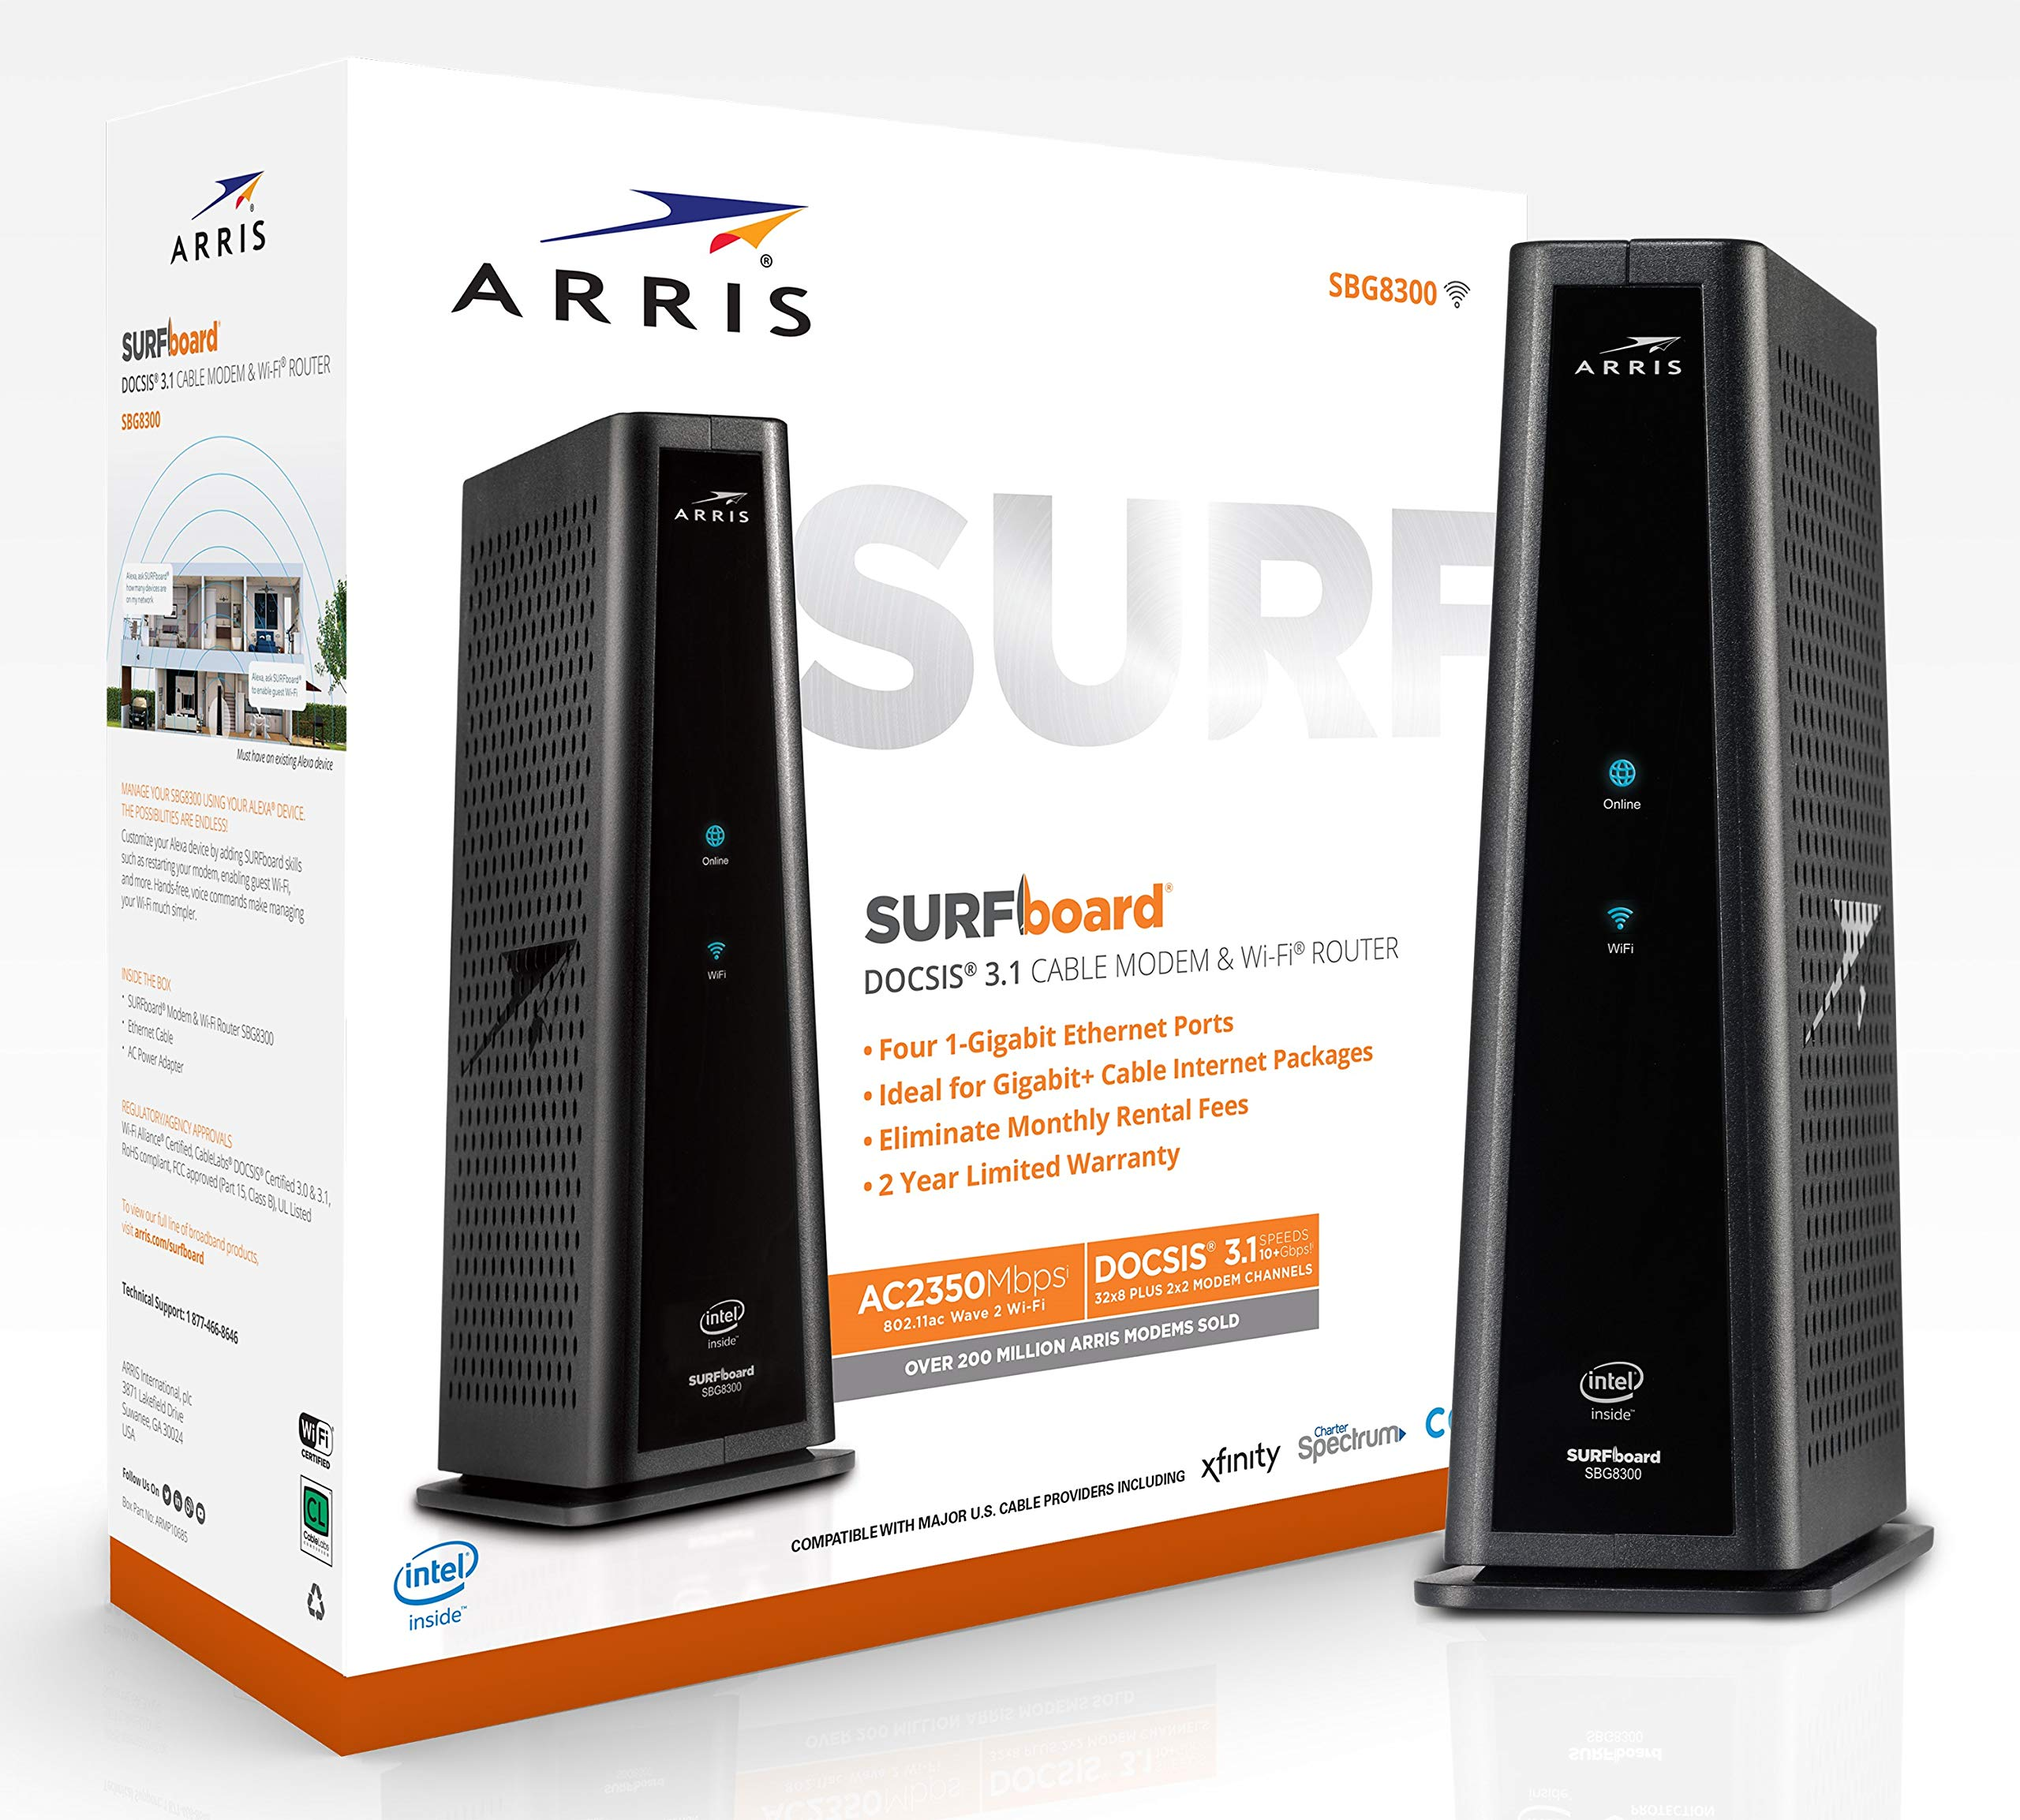 ARRIS Surfboard Docsis 3.1 Gigabit Cable Modem Plus AC2350 Dual Band Wi-Fi Router, Certified for Xfinity, and Cox 1 GB Service (SBG8300) by ARRIS